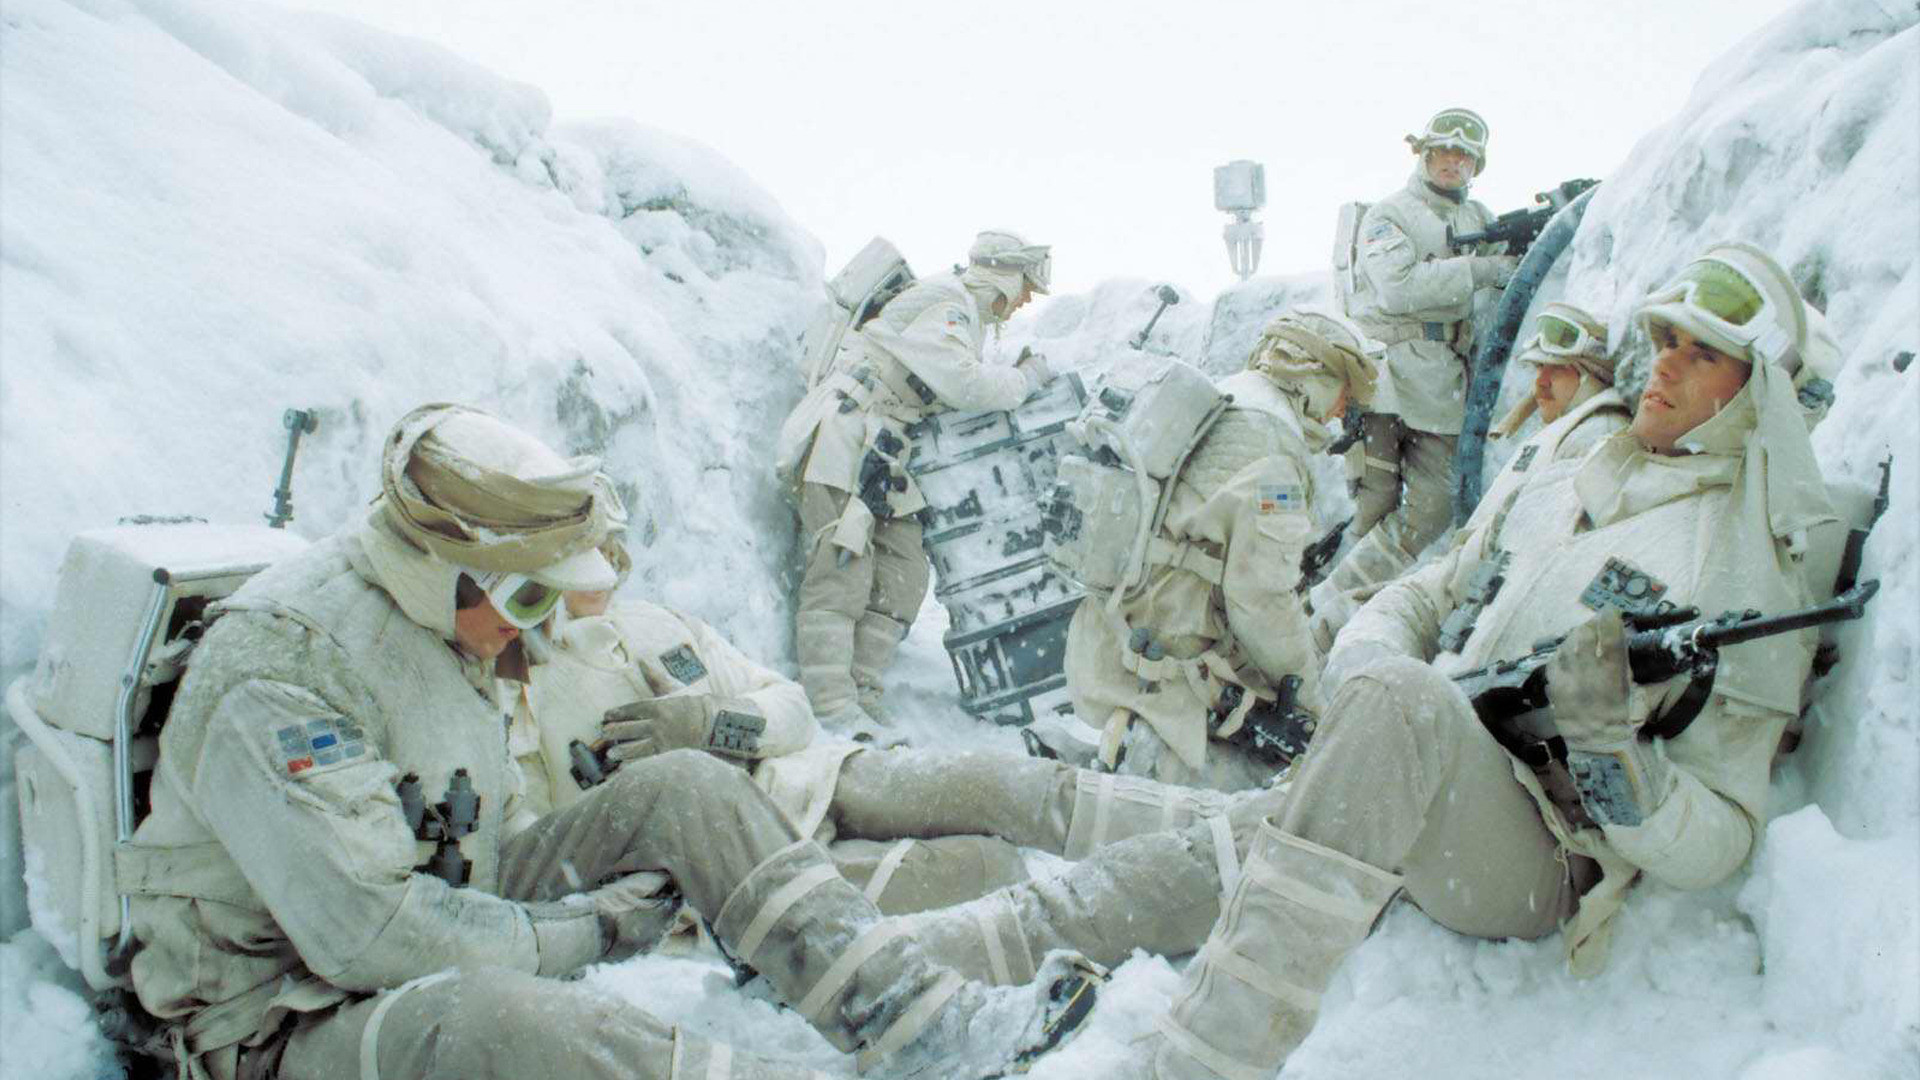 Empire Strikes Back Hoth